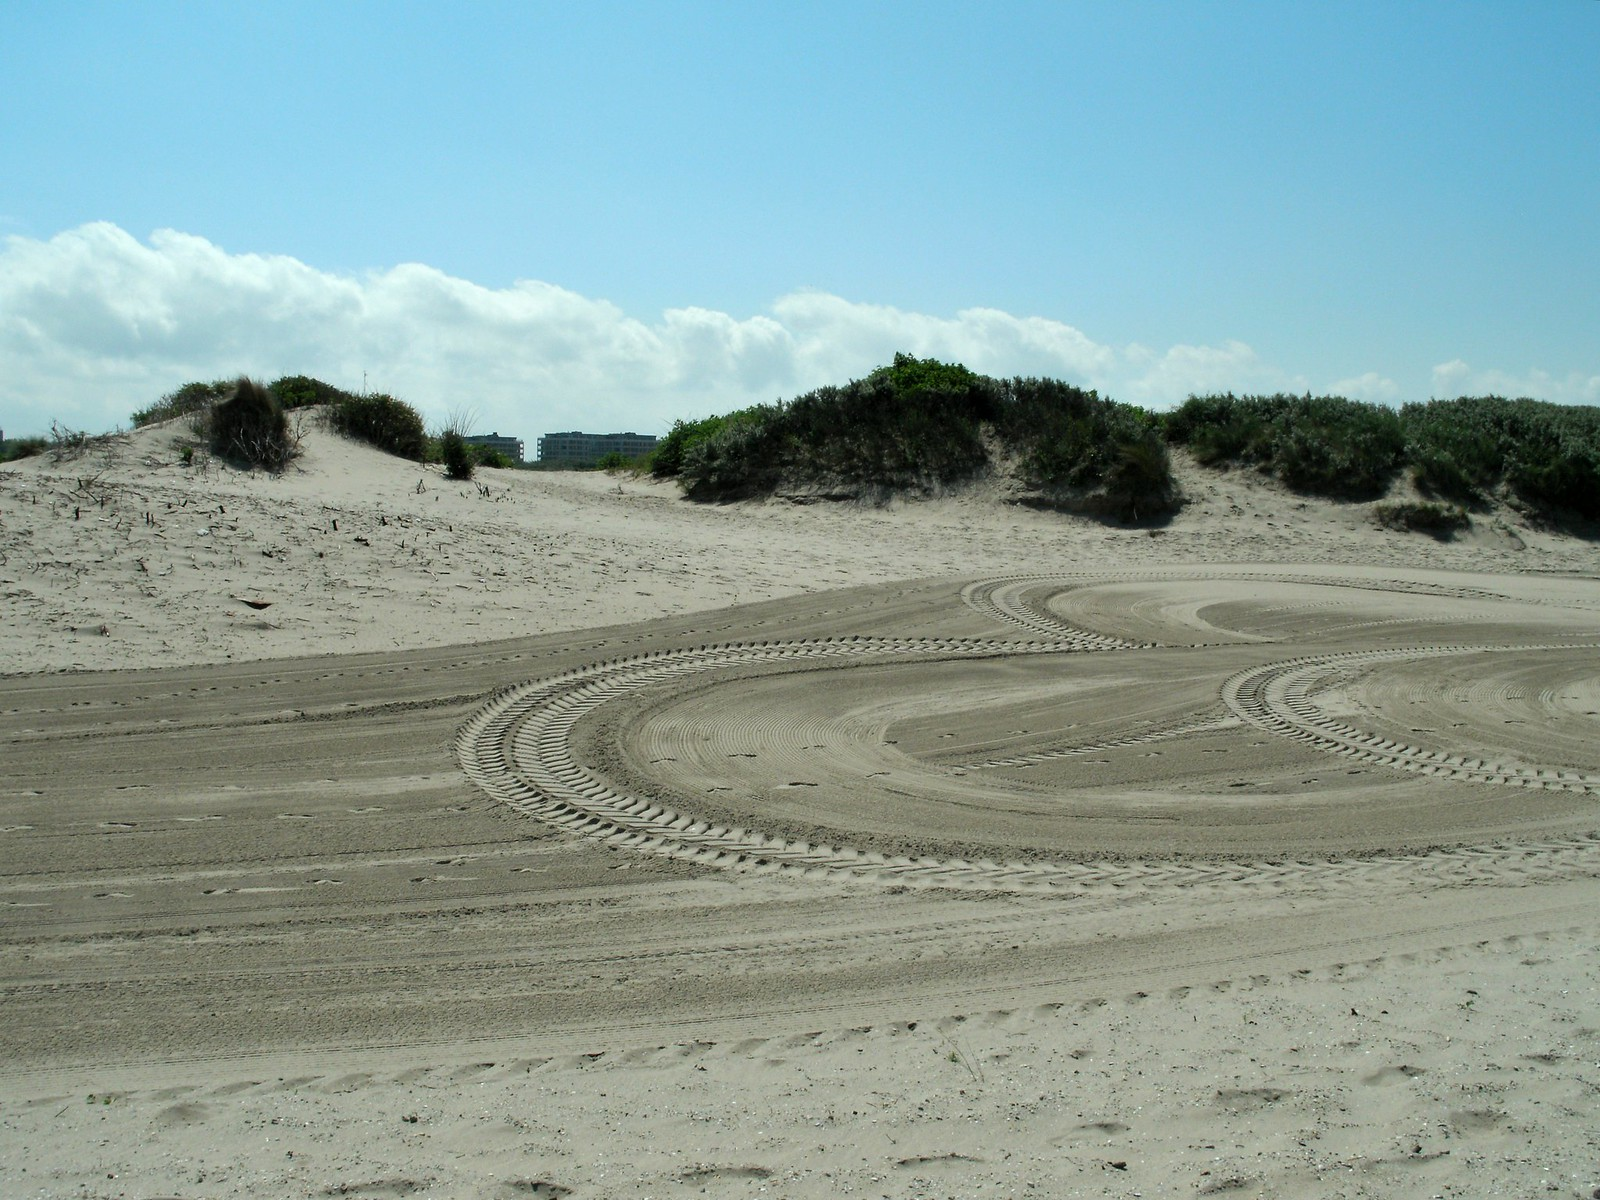 Marks in the sand show that vehicles have driven on the beach.